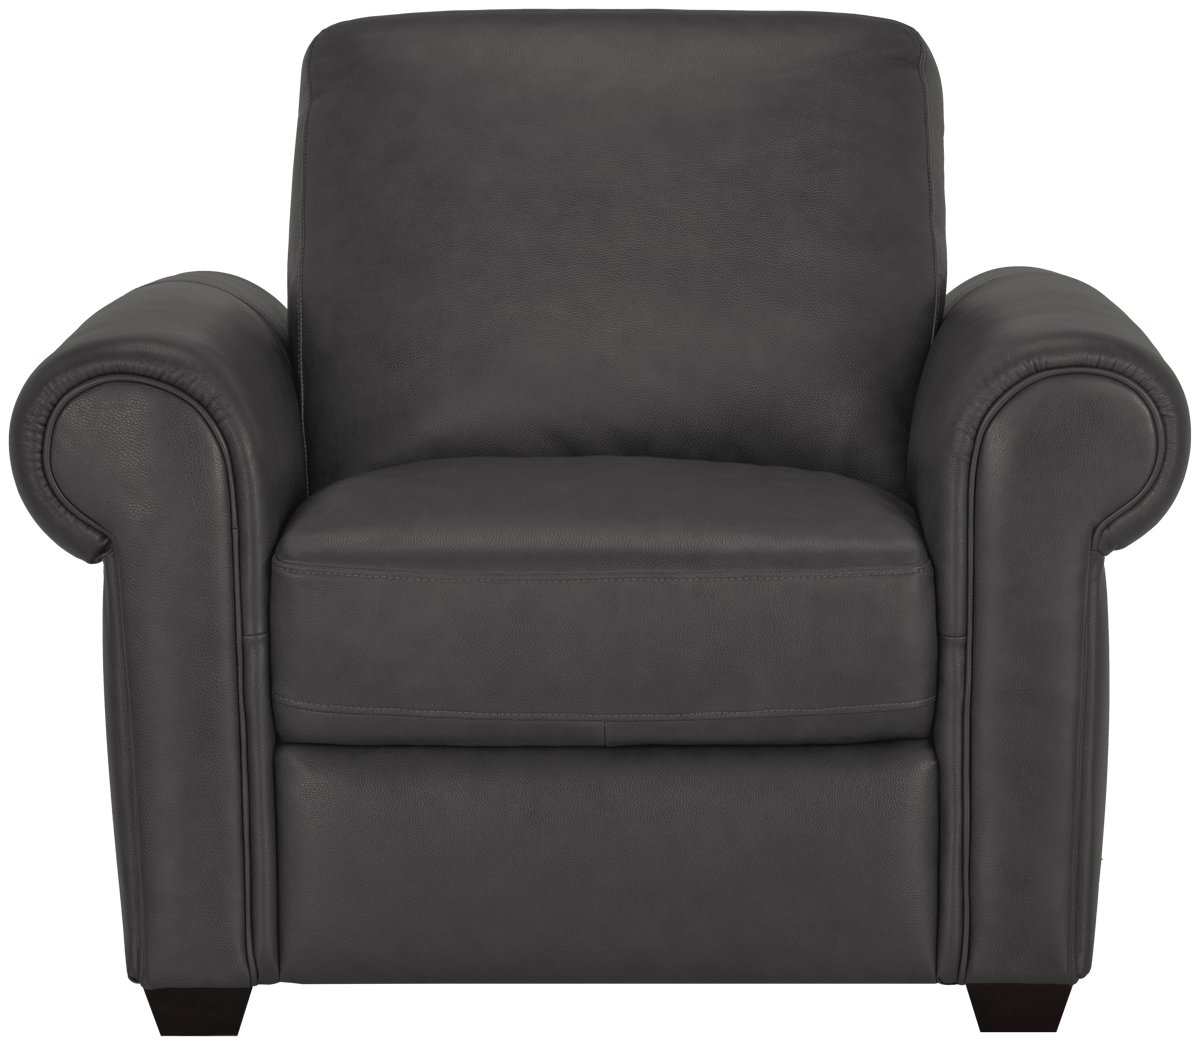 Lincoln Dark Gray Leather & Vinyl Chair